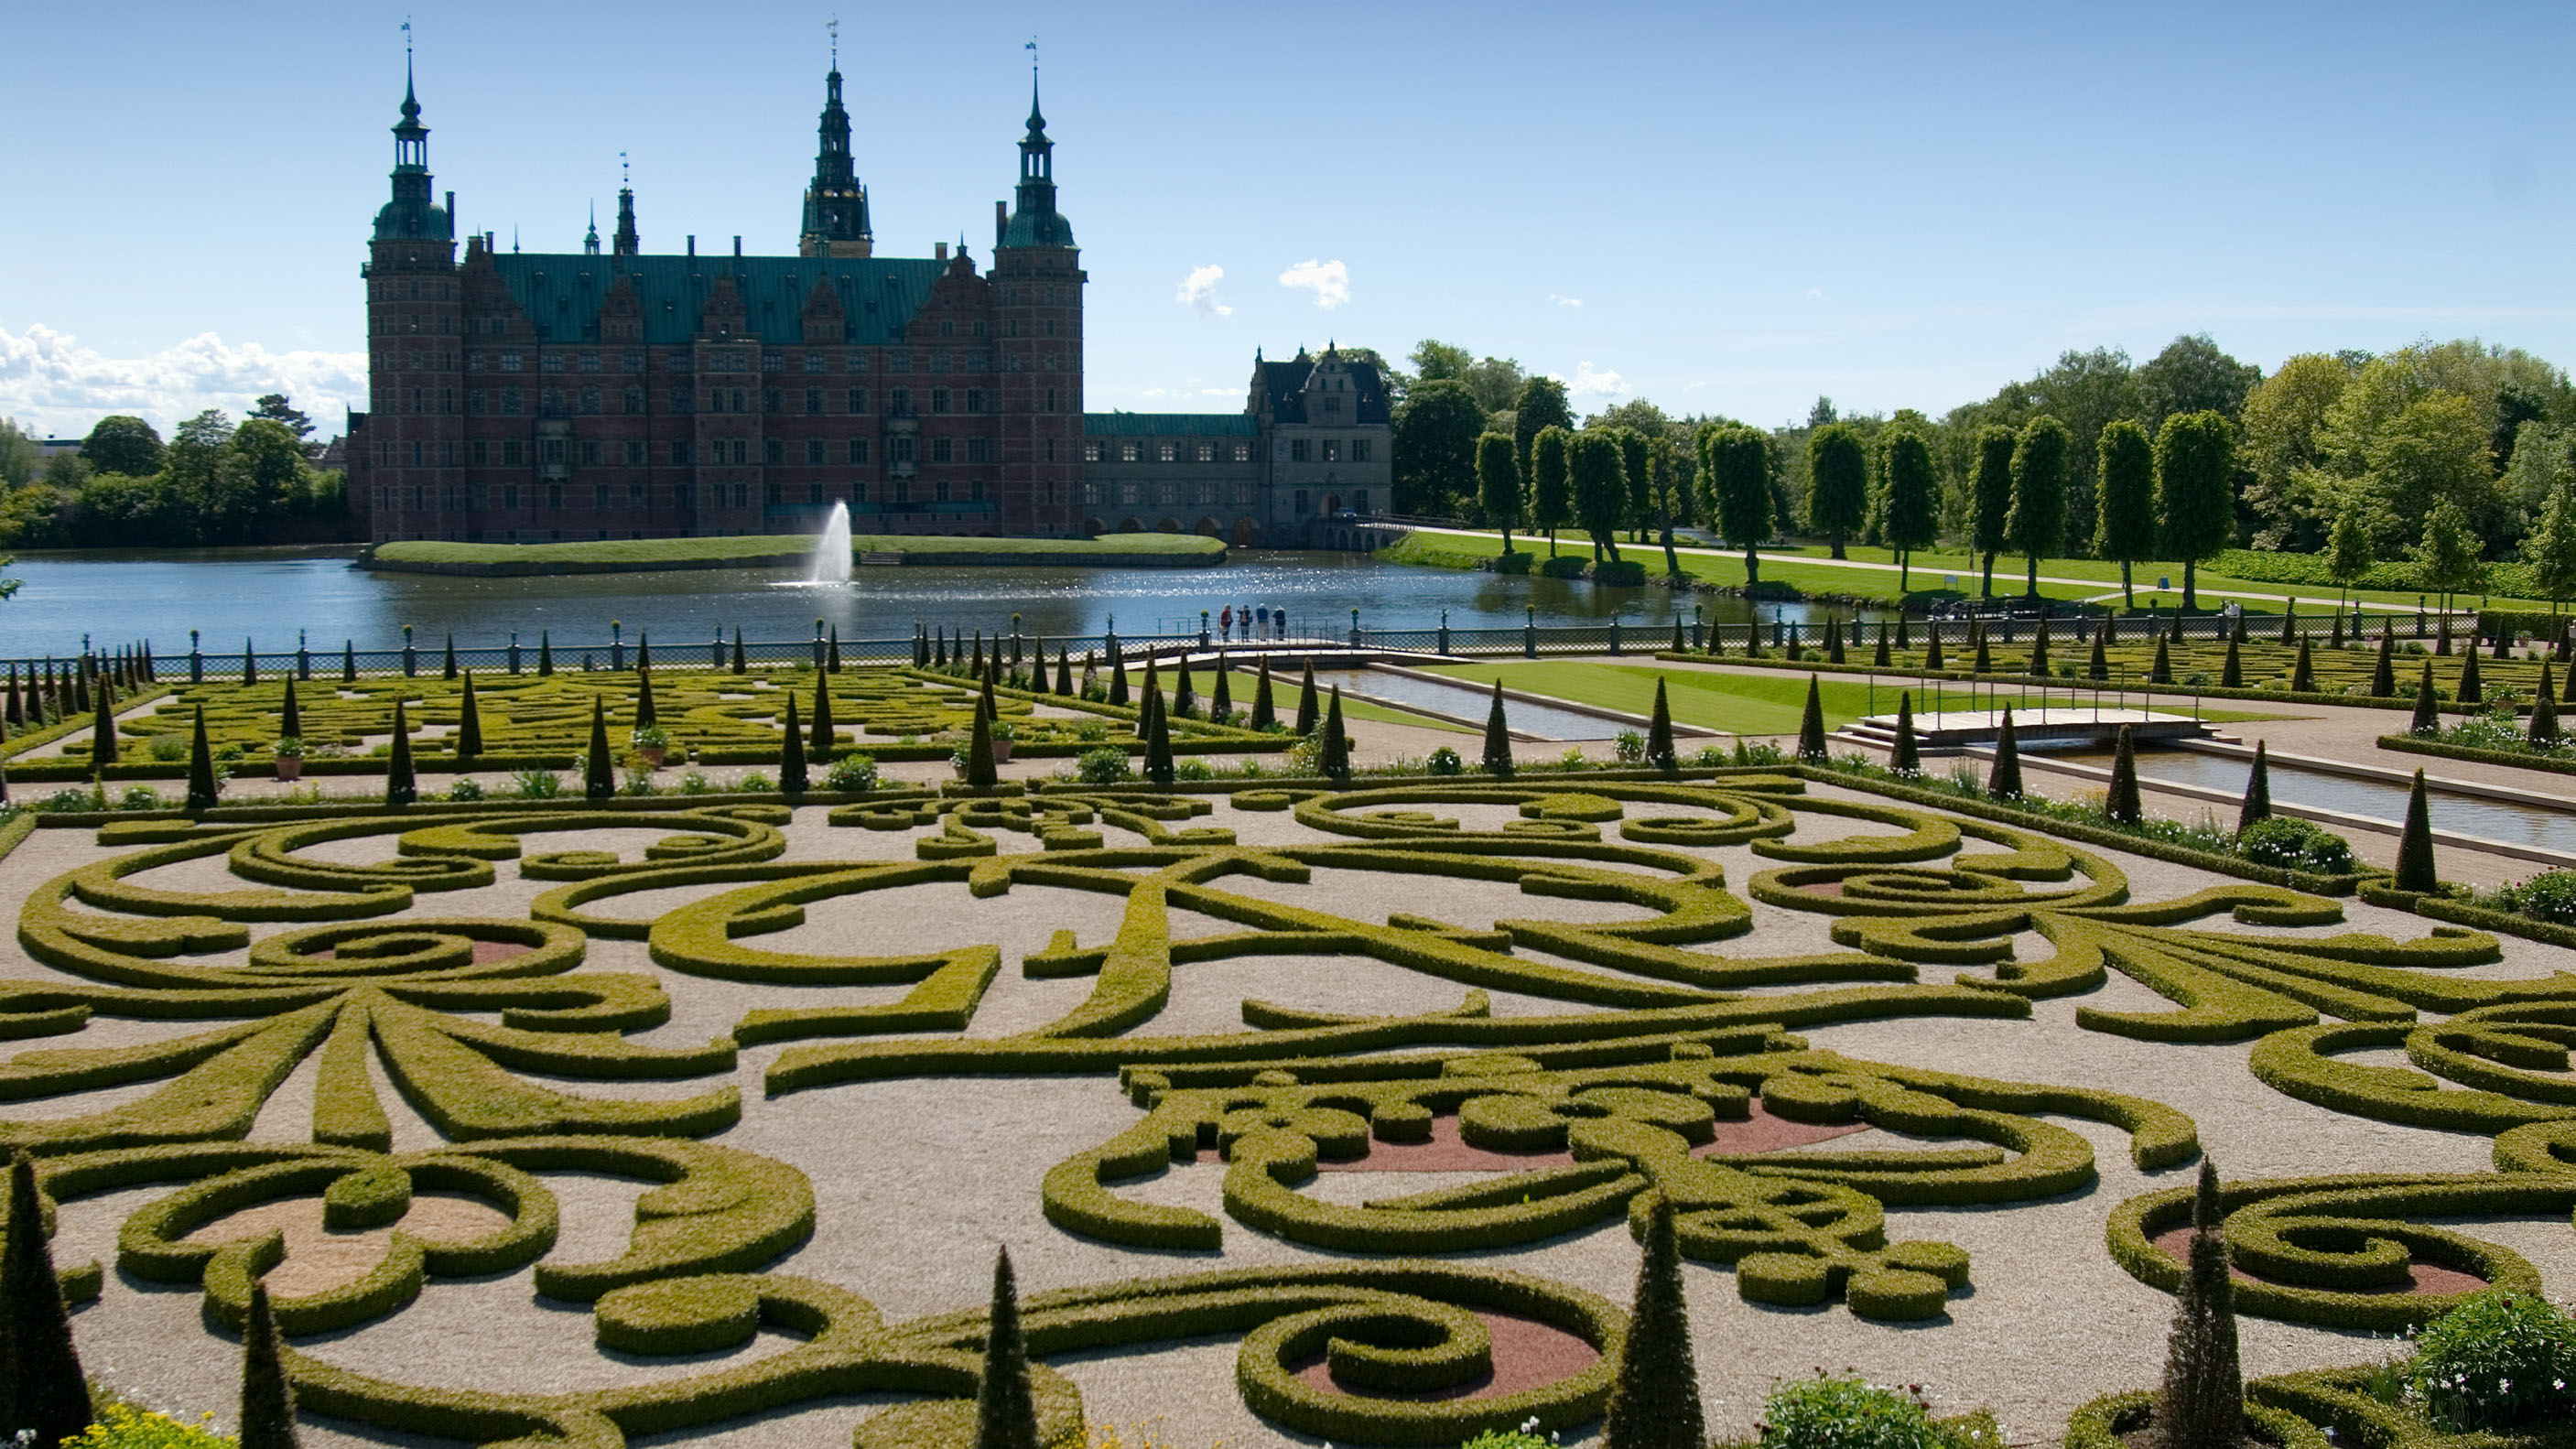 The museum of national history at frederiksborg castle copenhagen - Frederiksborg Castle Gardens